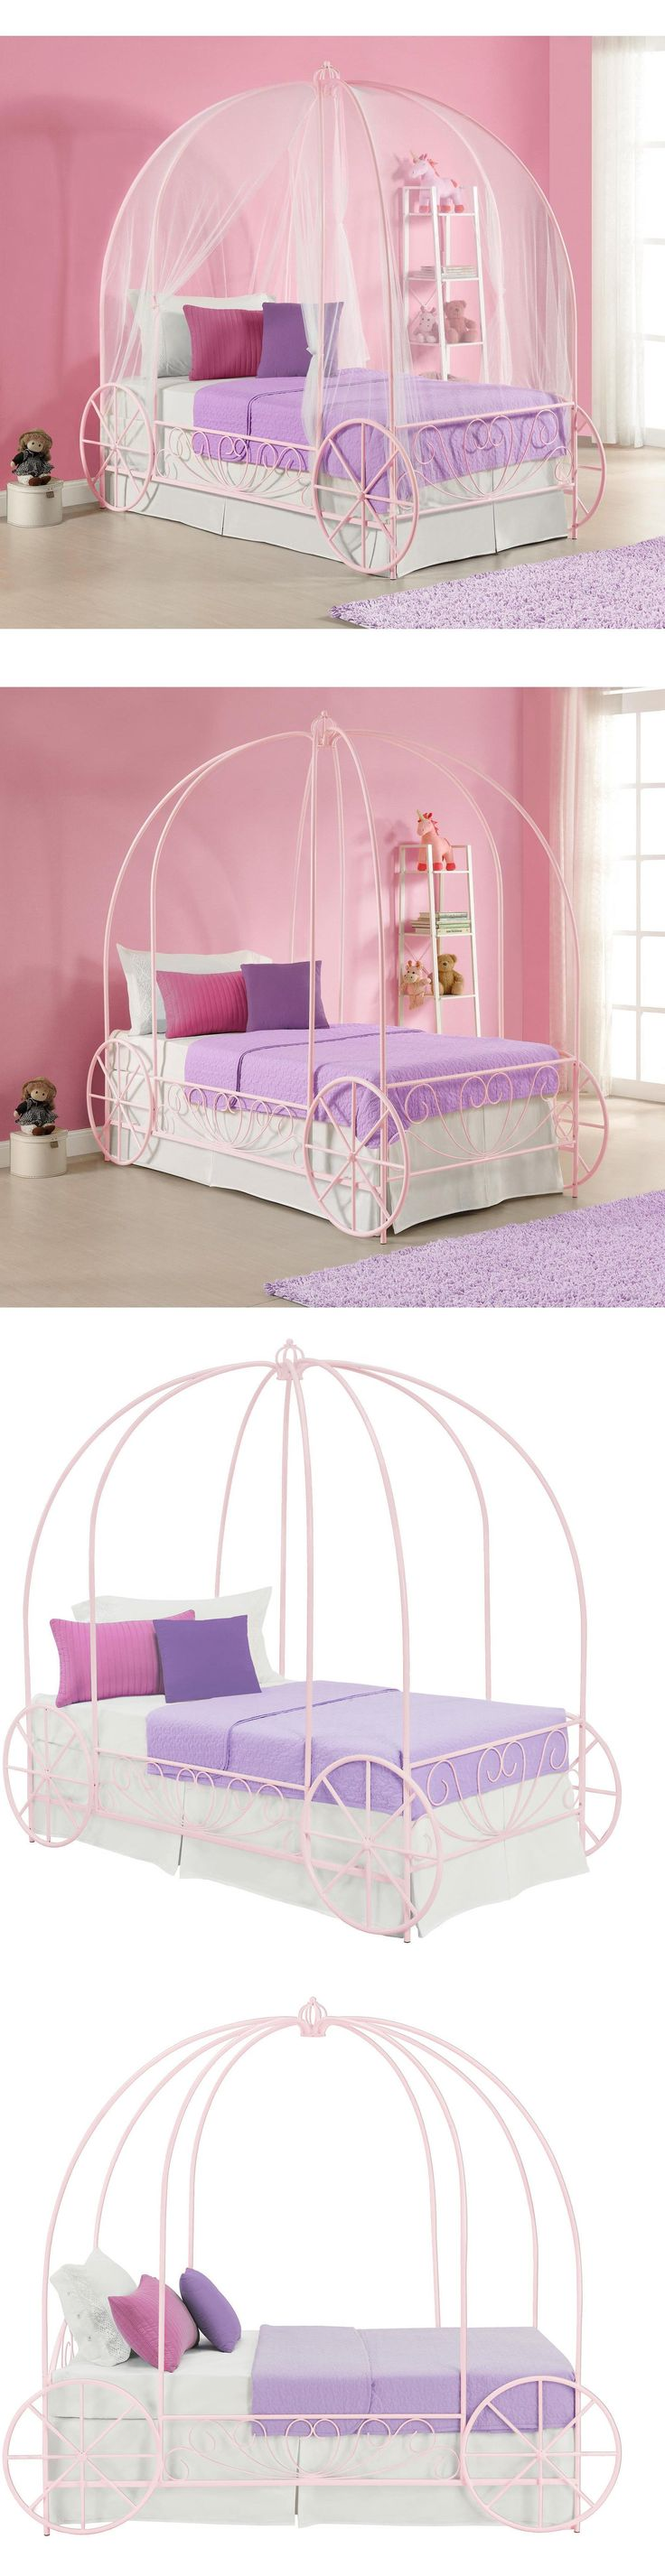 Bedroom Furniture 66742: Pink Canopy Bed Princess Carriage Twin Kids Girls Bedroom  Furniture Cinderella -